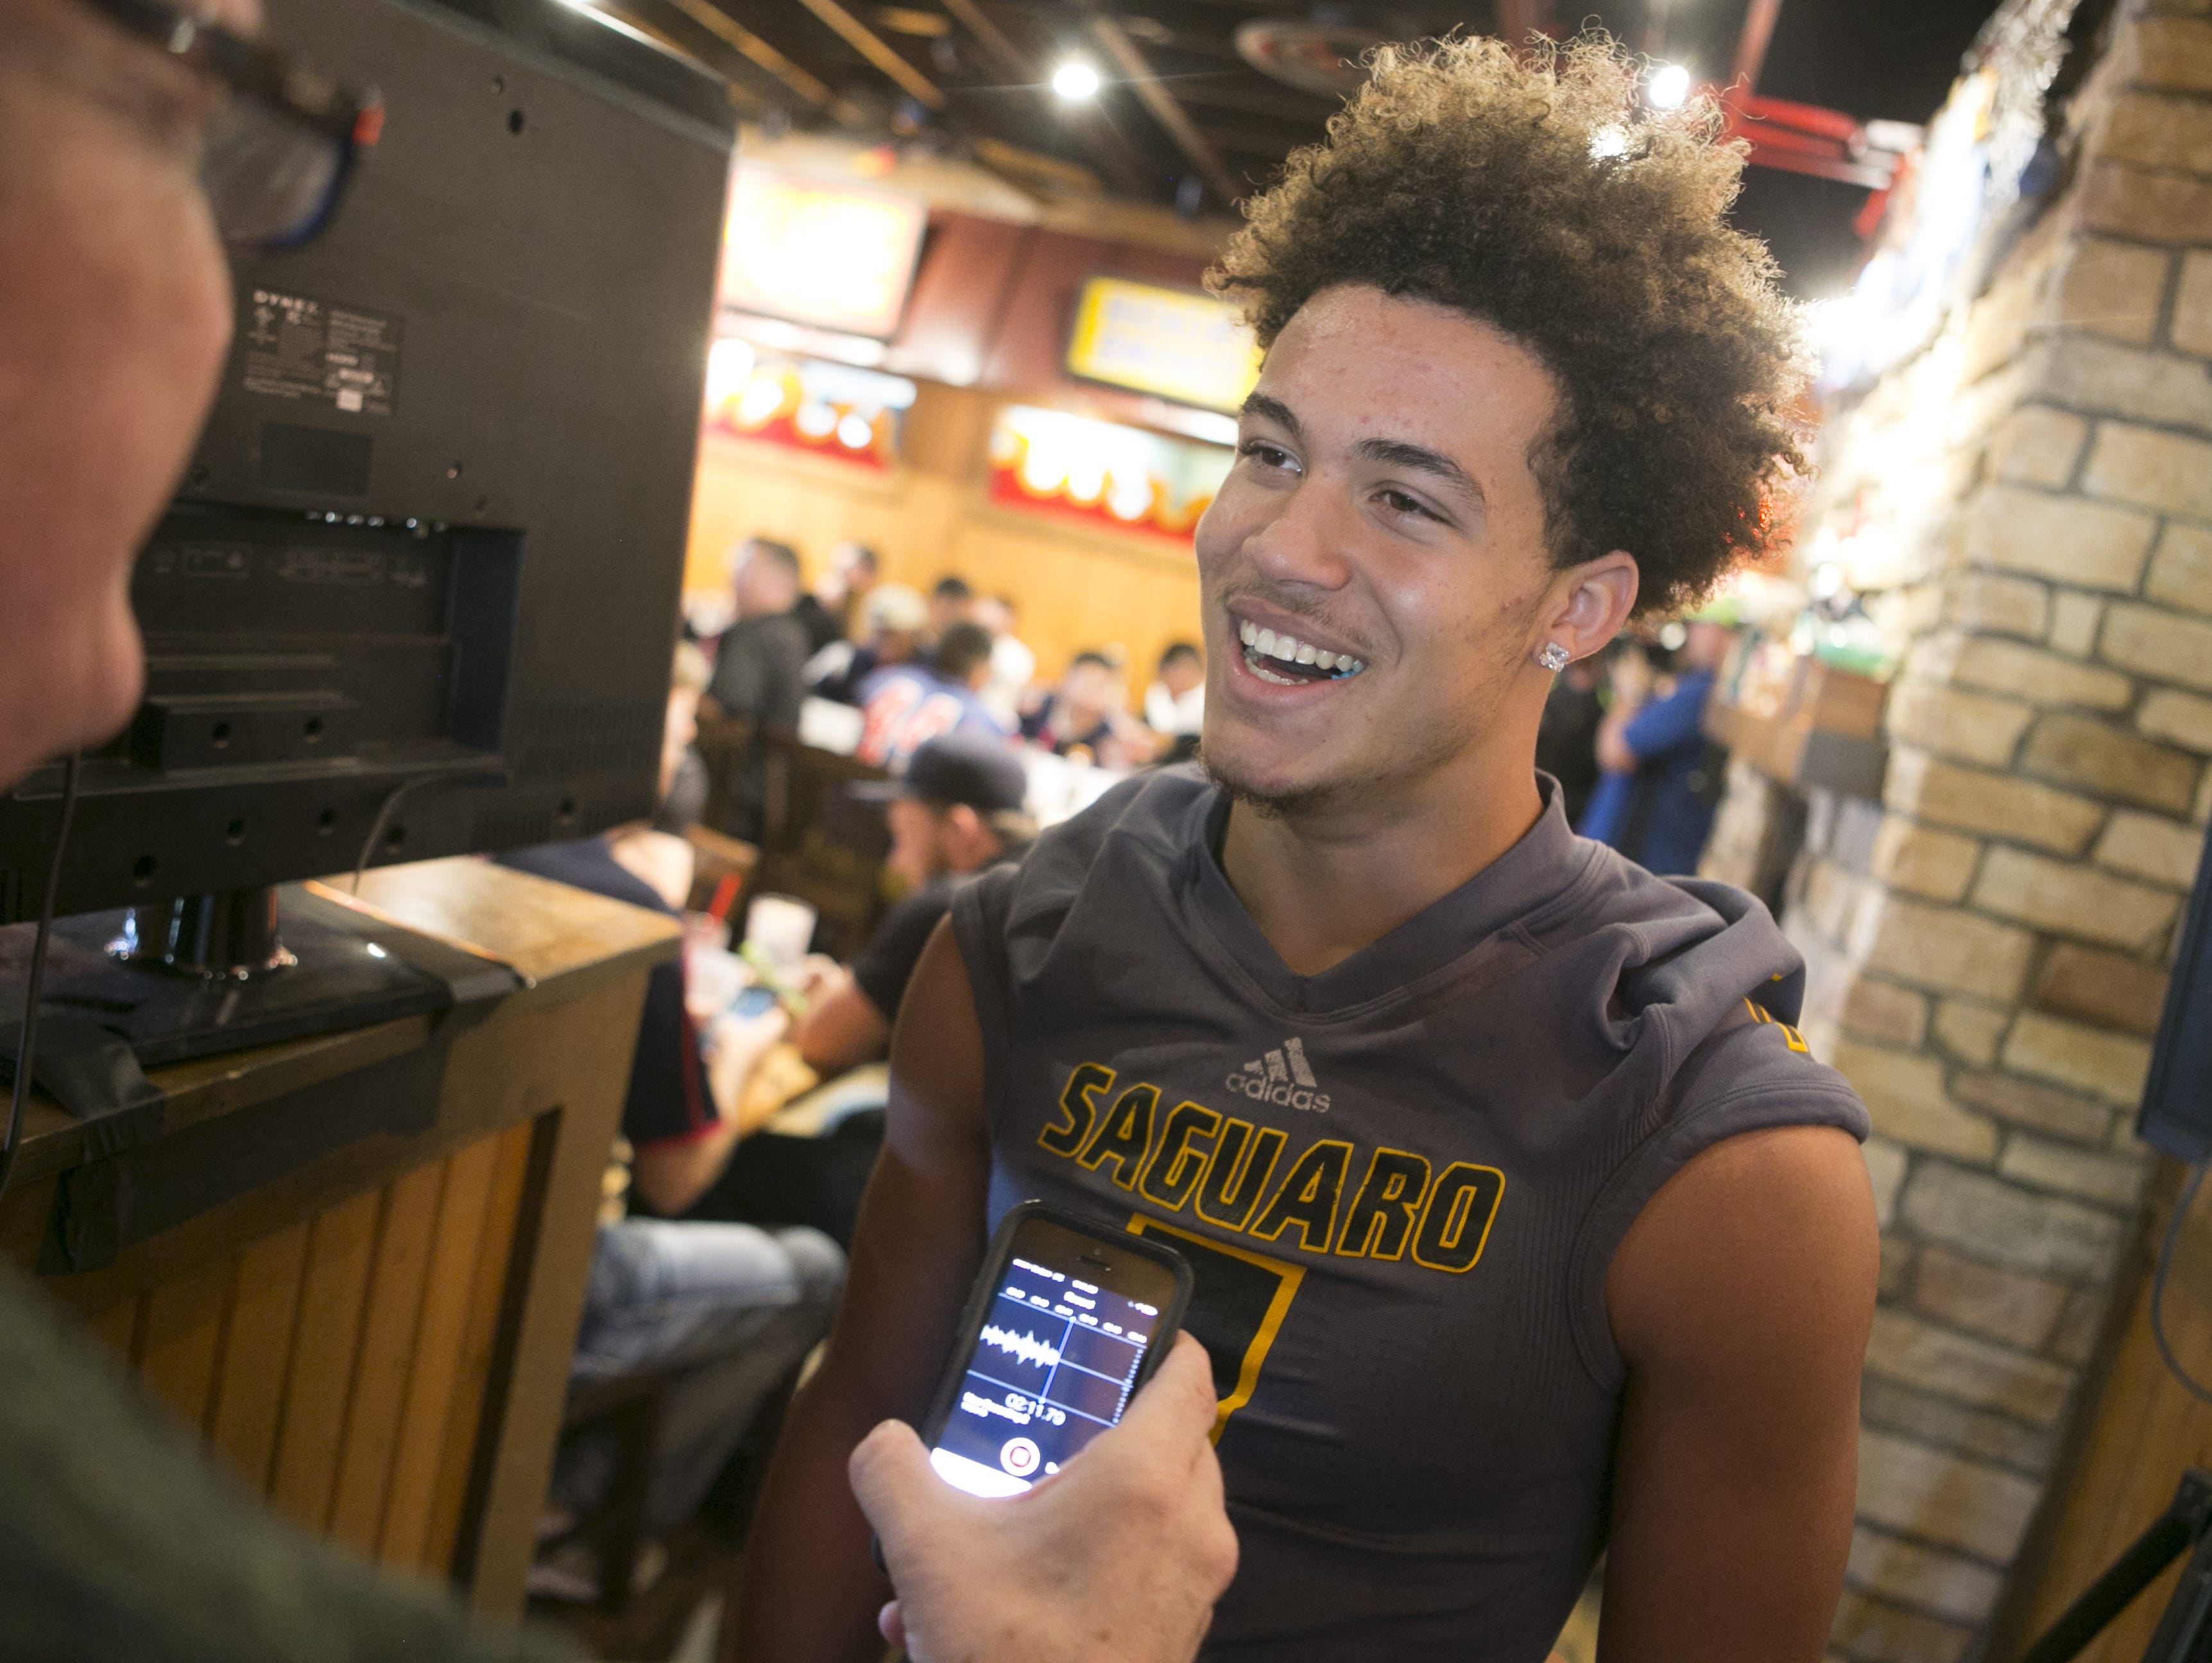 Saguaro High defensive back and wide receiver Byron Murphy smiles while being interviewed during the AIA high school football championship media day at Famous Dave's Bar-B-Que in Mesa on Tuesday, November 24, 2015.